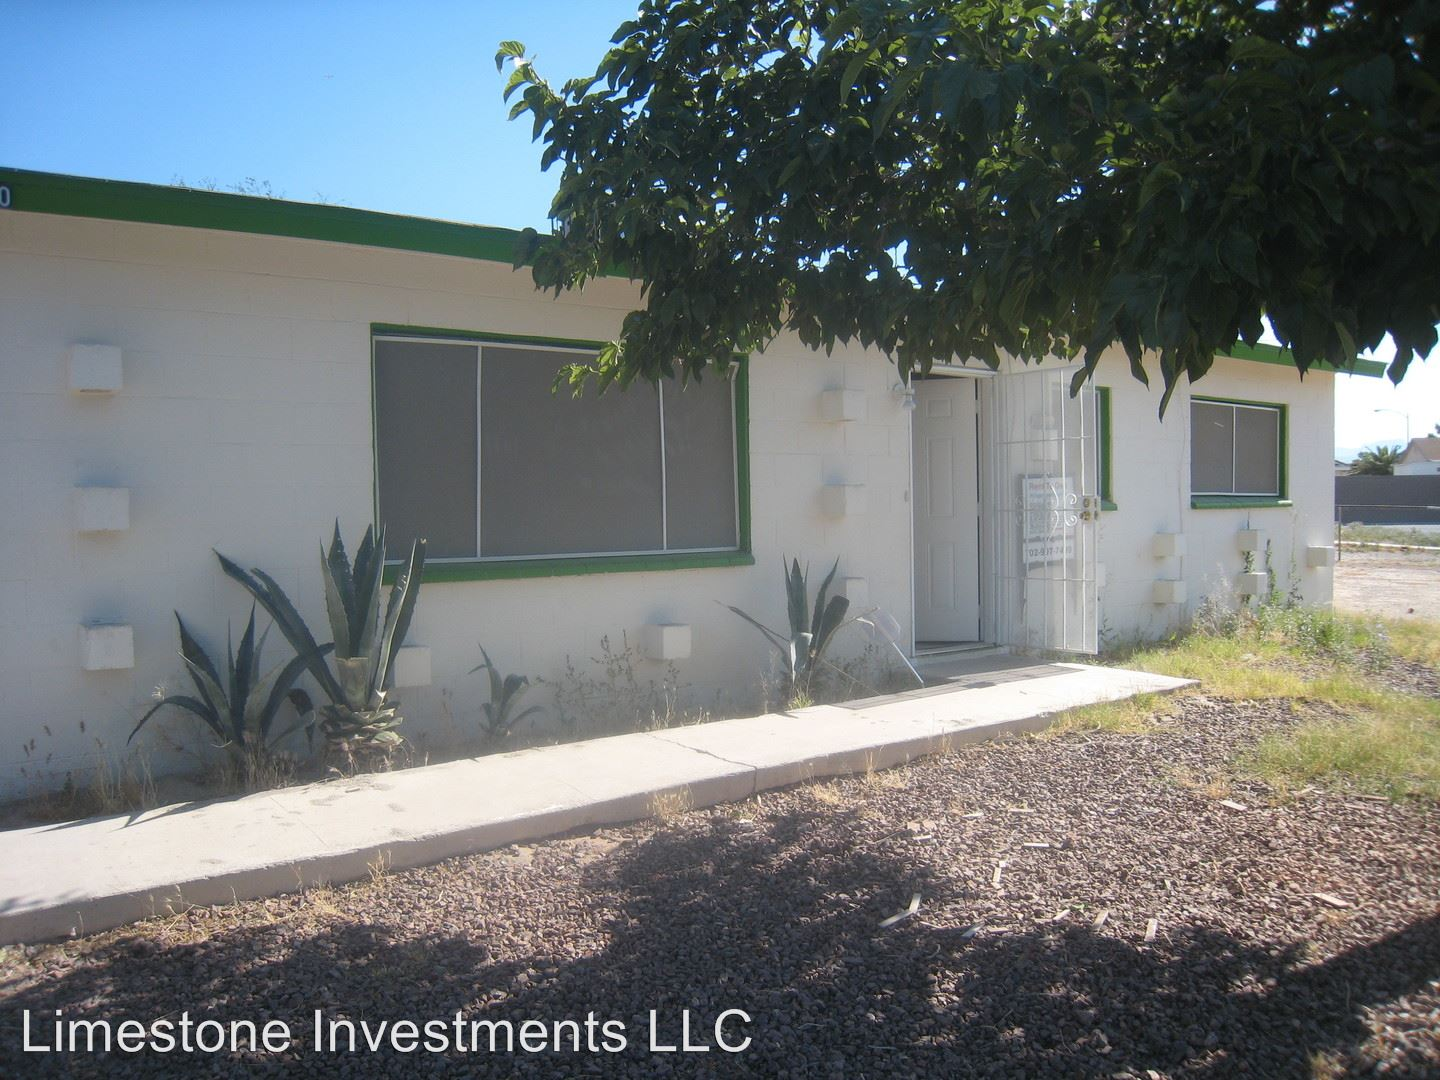 2109 Hassell Ave, North Las Vegas, NV - $1,100